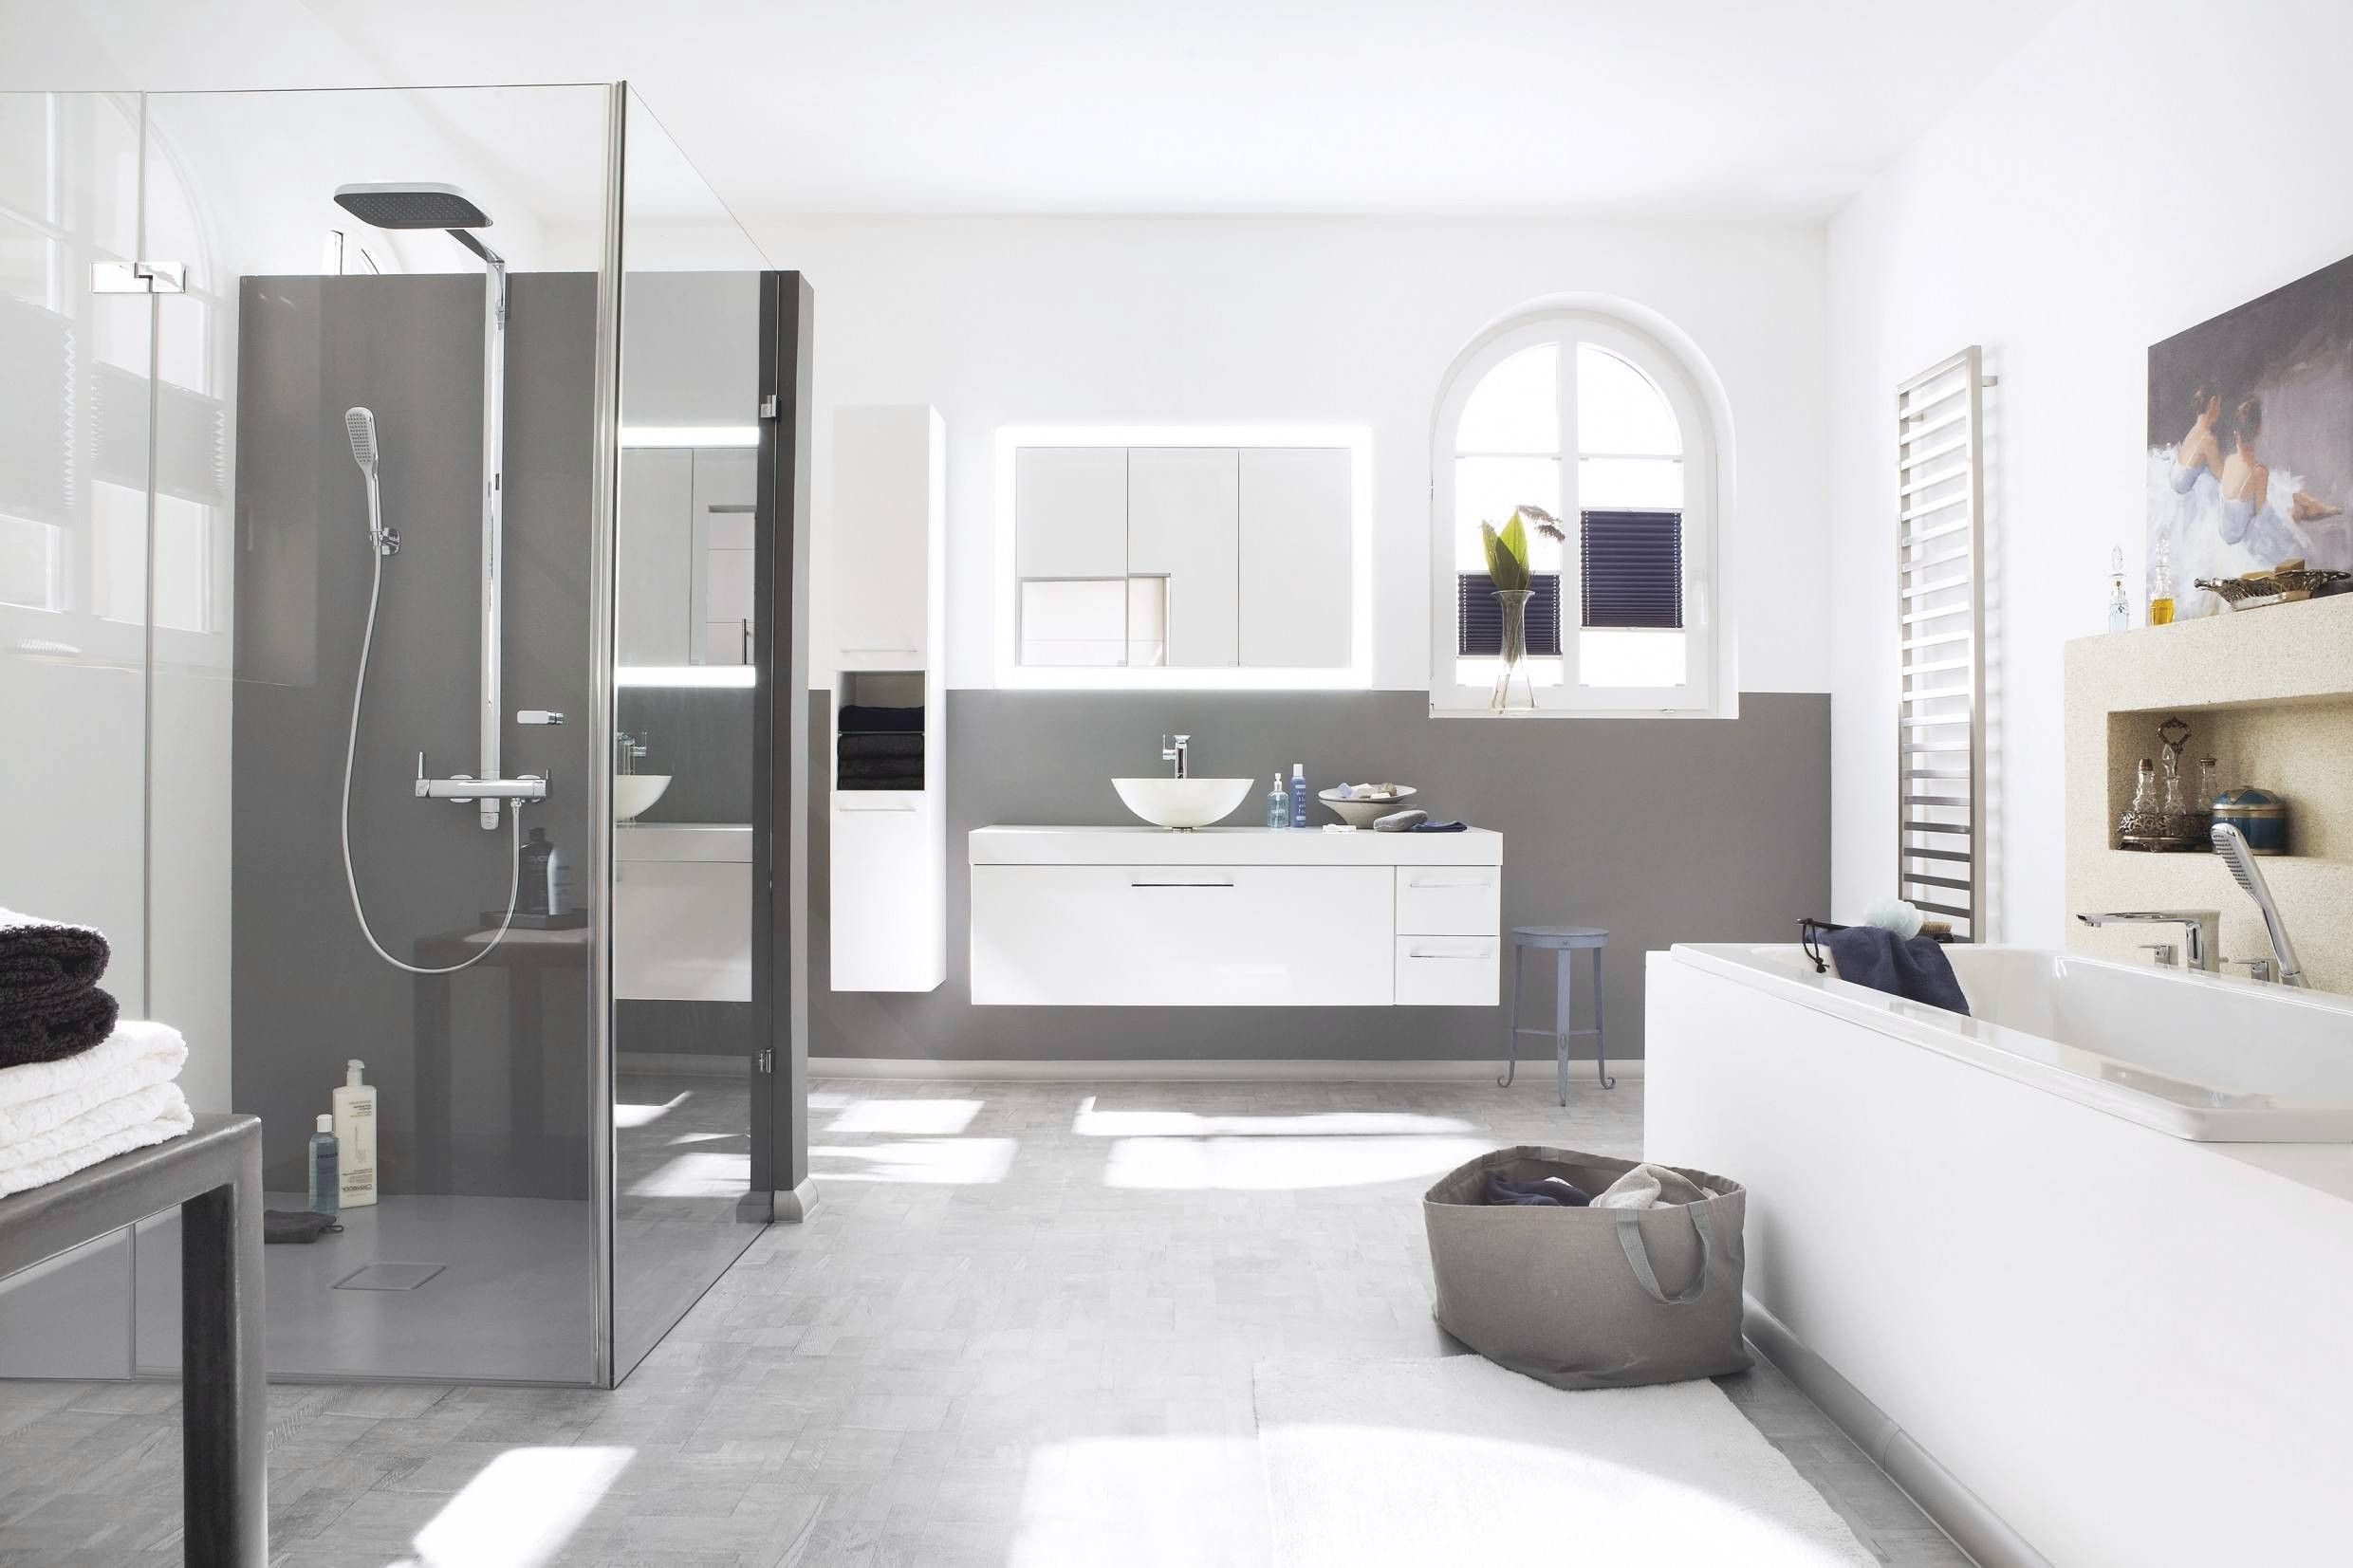 Neues Badezimmer Kosten 6 Qm Bad Renovieren Kosten | Narrow Bathroom Designs, Small Bathroom, Bathroom Design Small